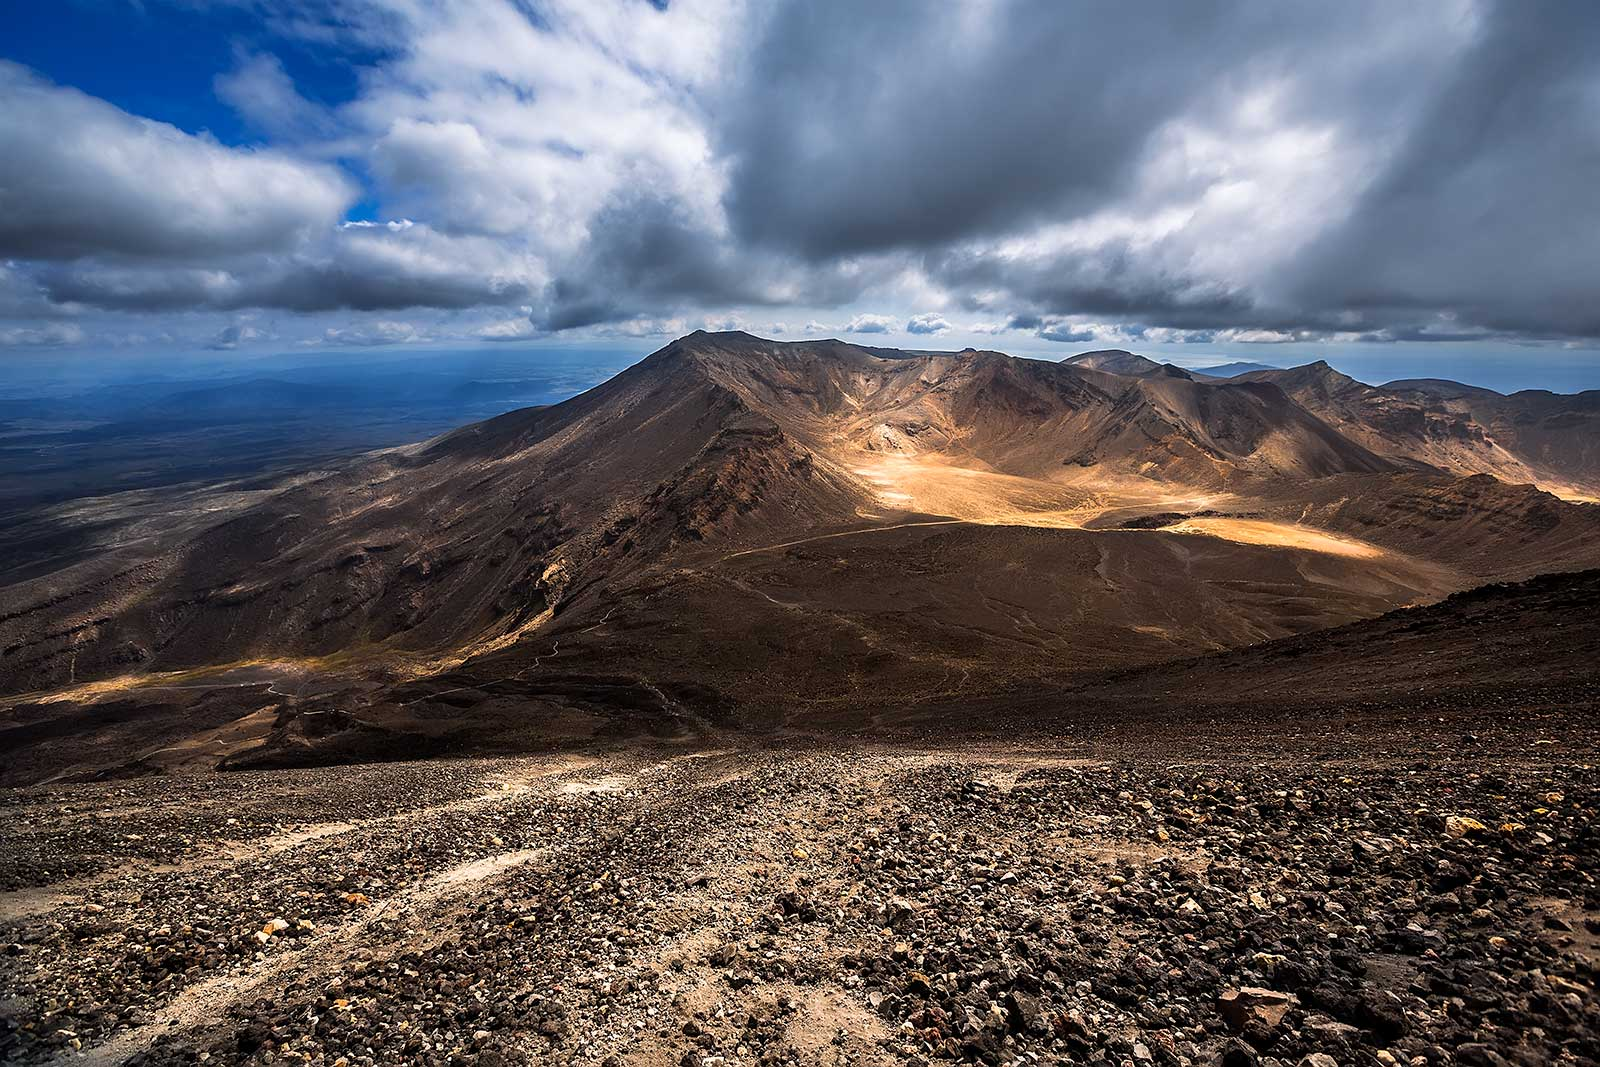 tongariro-alpine-crossing-view-from-mt-ngauruhoe-new-zealand